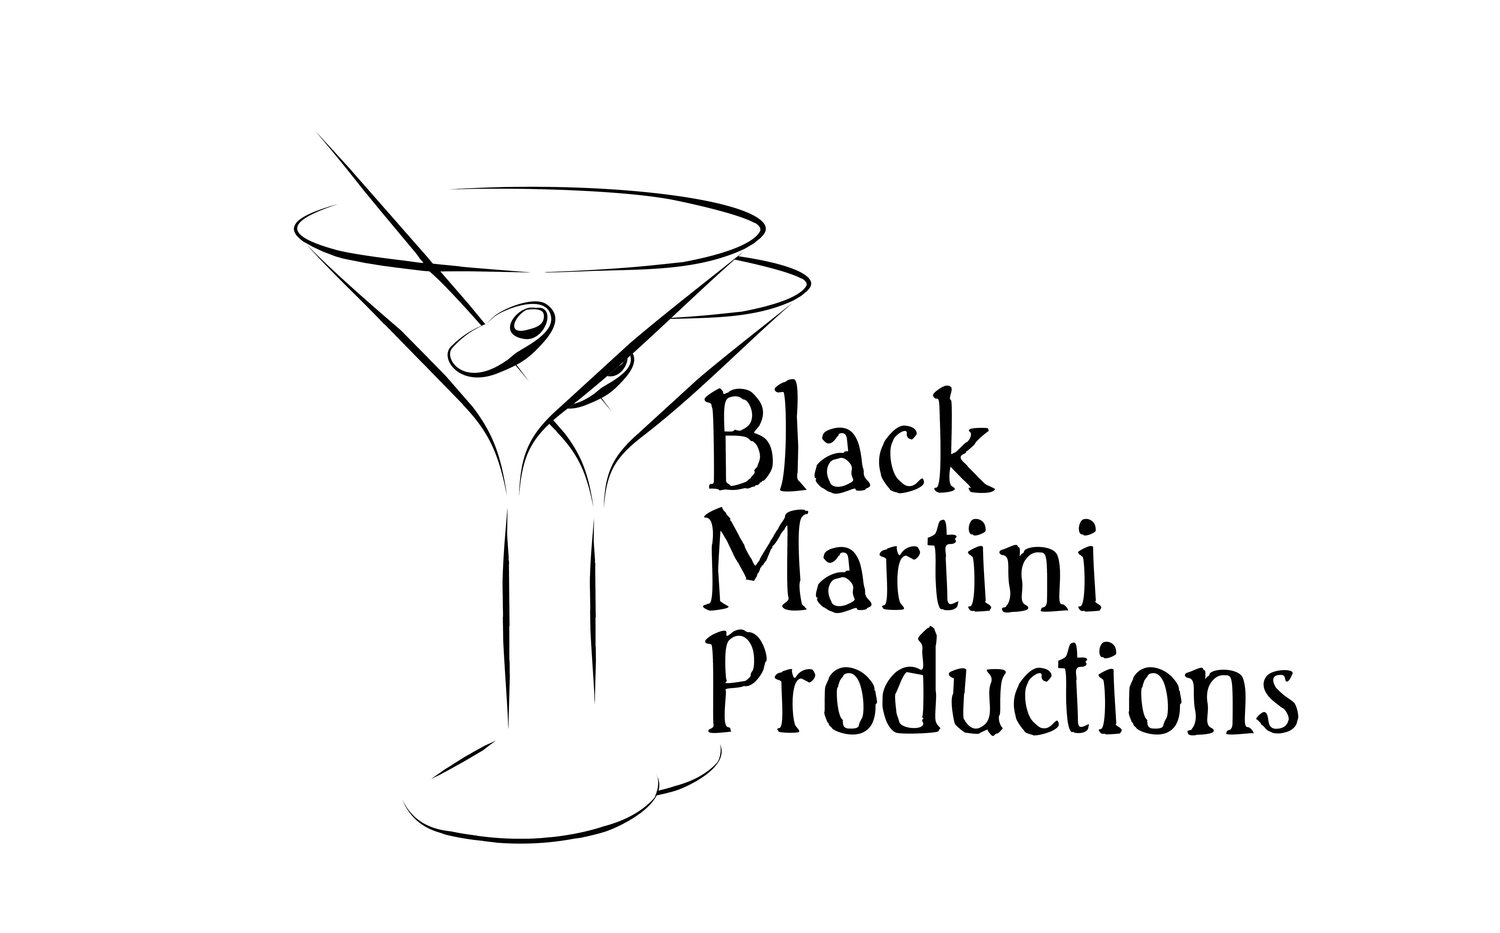 Black Martini Productions